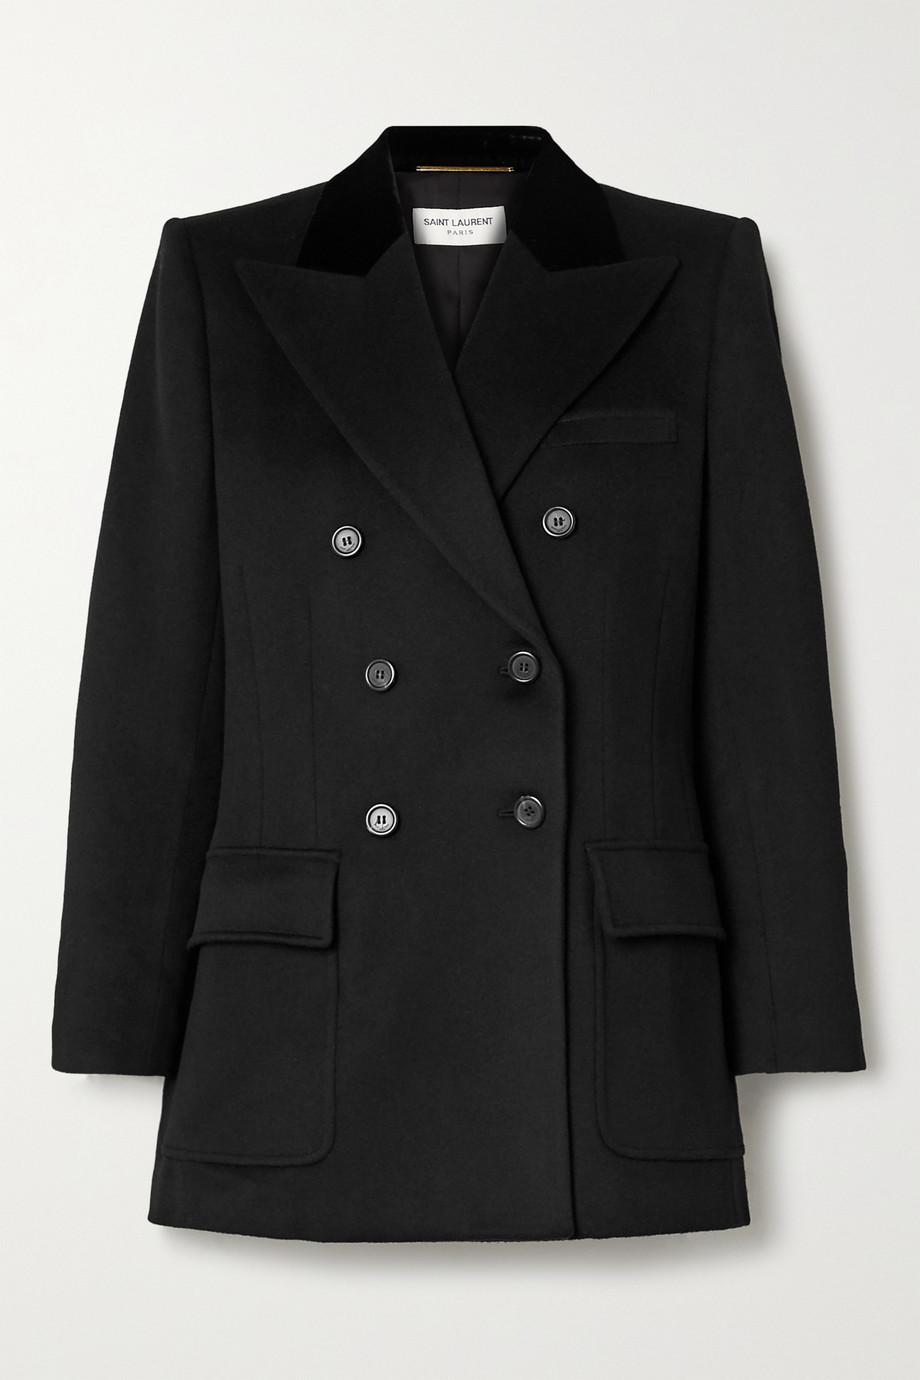 SAINT LAURENT Double-breasted velvet-trimmed wool and cashmere-blend blazer